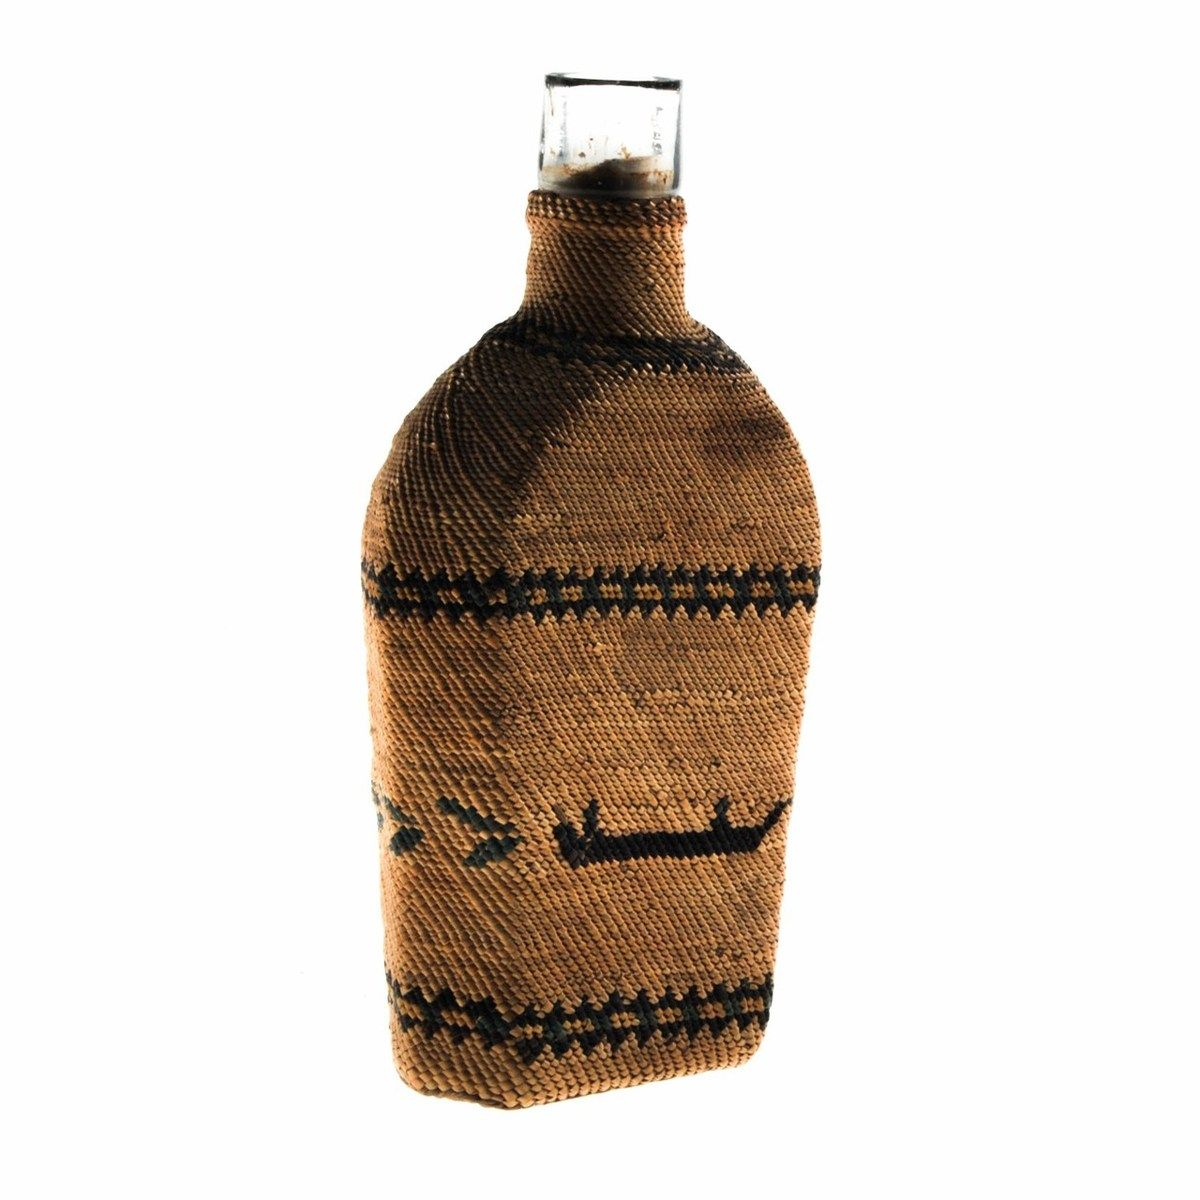 The Stamp and Coin Place - Makah Native American Wrapped Glass Bottle, circa 1900